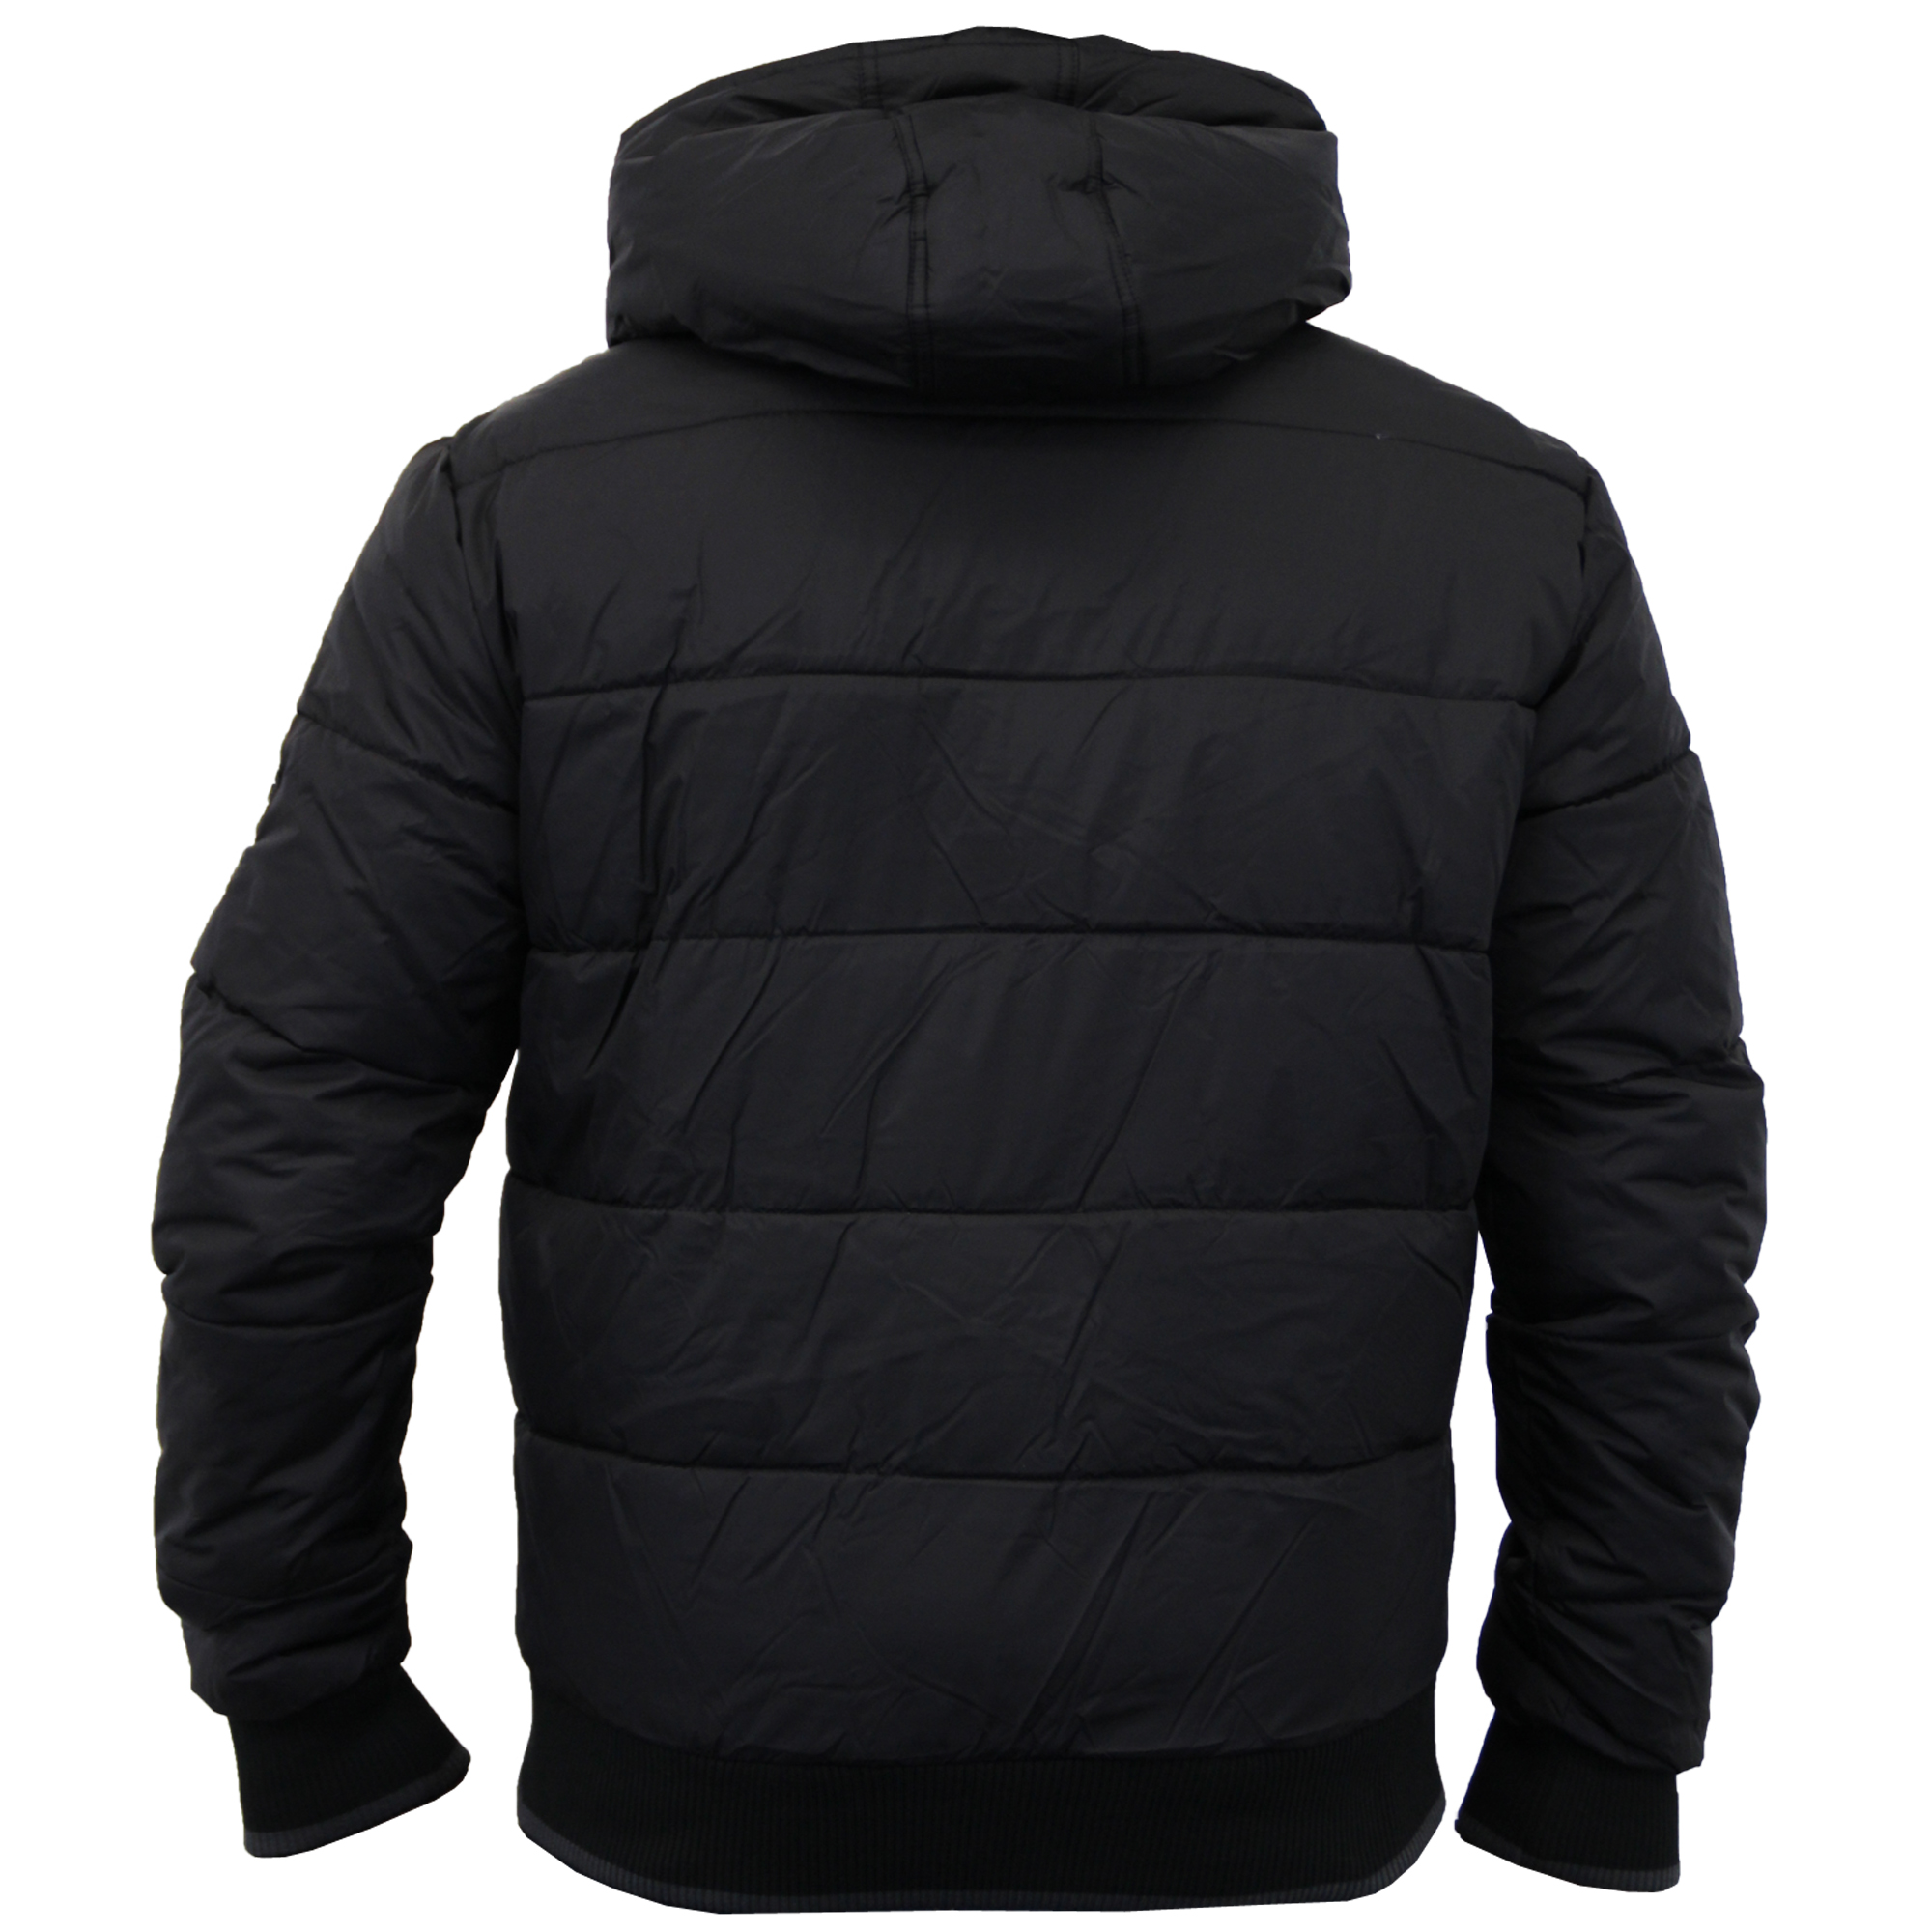 Keep out the chill with a stylish, but practical, padded jacket. Our mens padded jackets are ideal for outdoor pursuits and every-day wear. For the ultimate in warmth and comfort choose our padded down jacket.